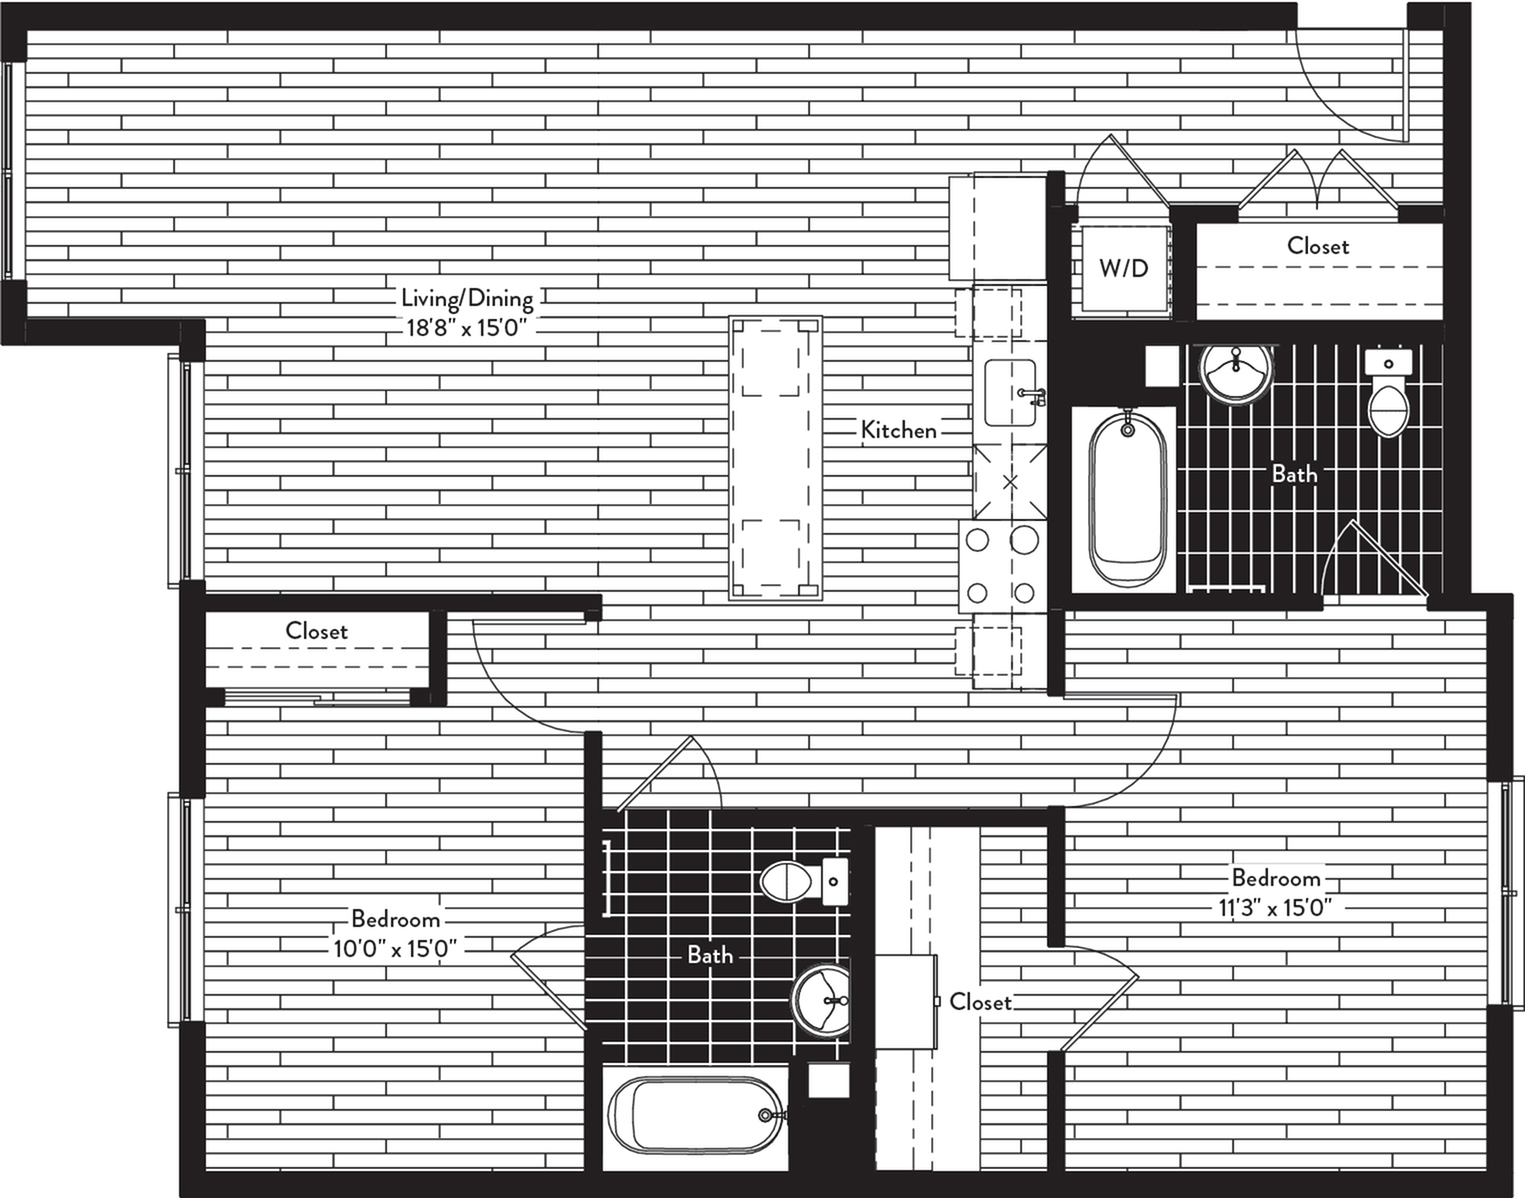 1081 square foot two bedroom two bath floor plan image